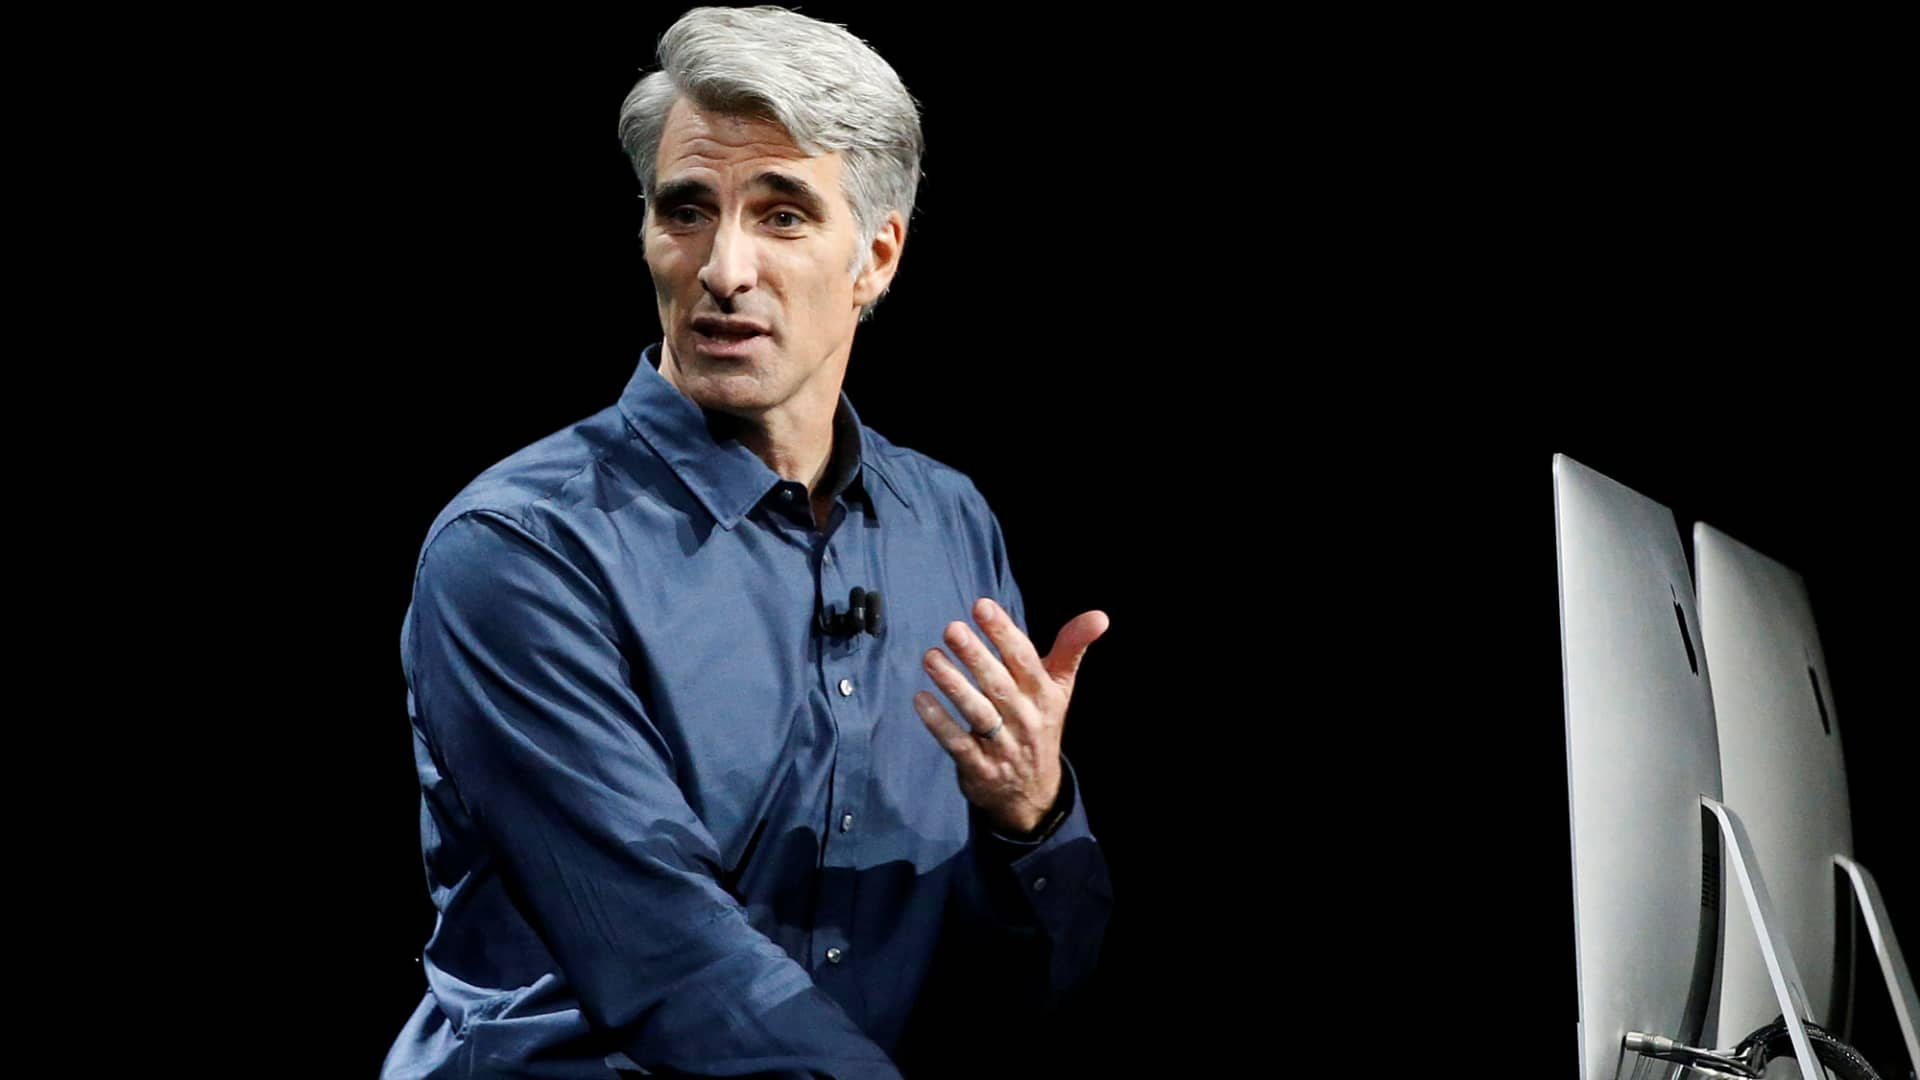 Craig Federighi, Senior Vice President of Software Engineering for Apple, discusses the Siri desktop assistant for MacOS Sierra at the company's Worldwide Developers Conference in San Francisco, June 13, 2016.